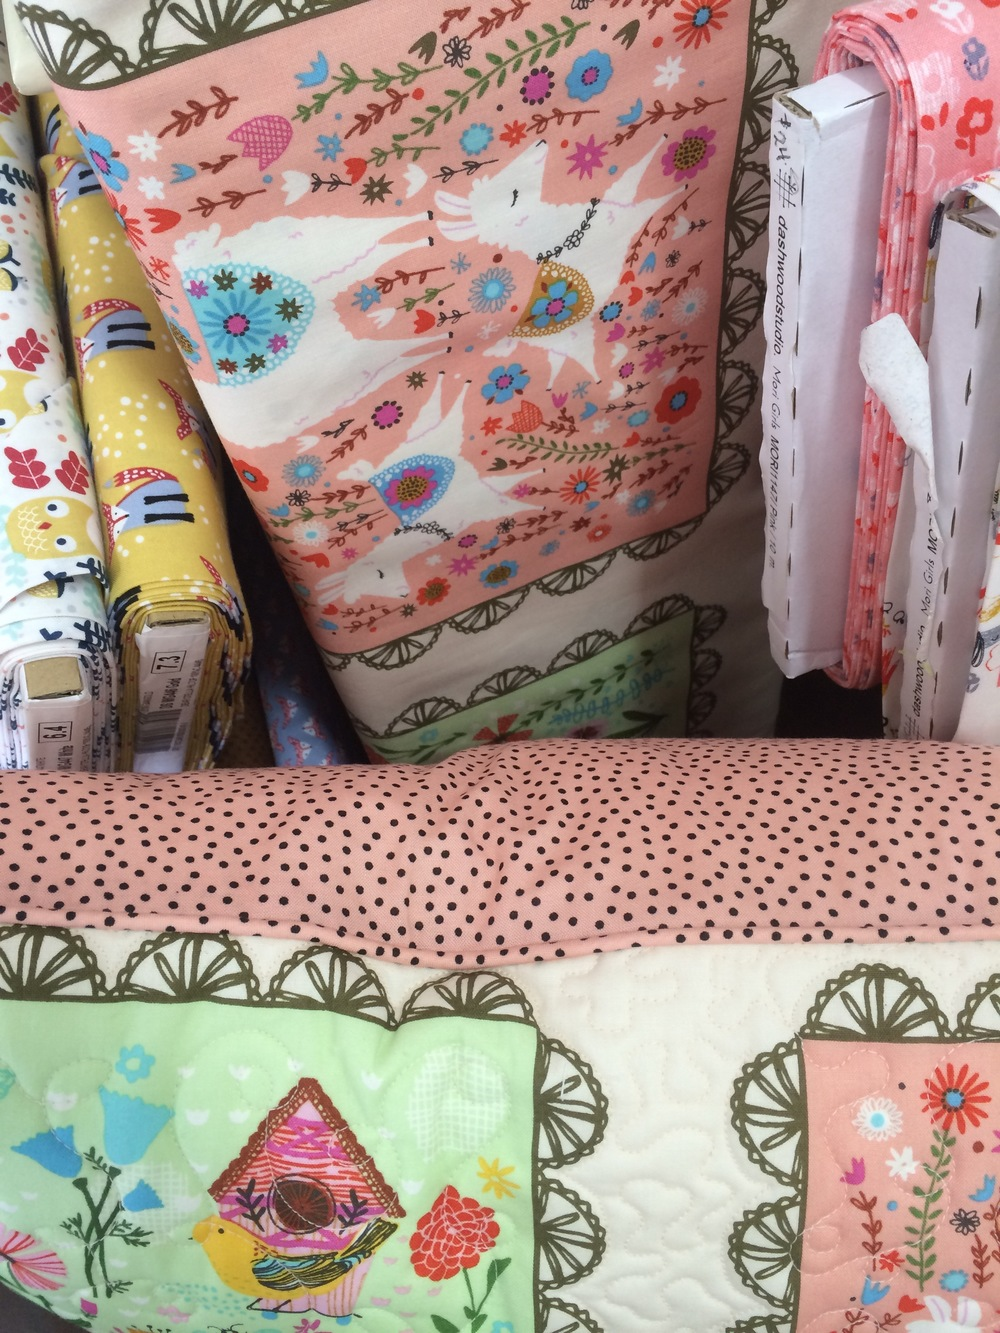 The cushion is backed with Jen Kingwell's Just a Speck fabric.